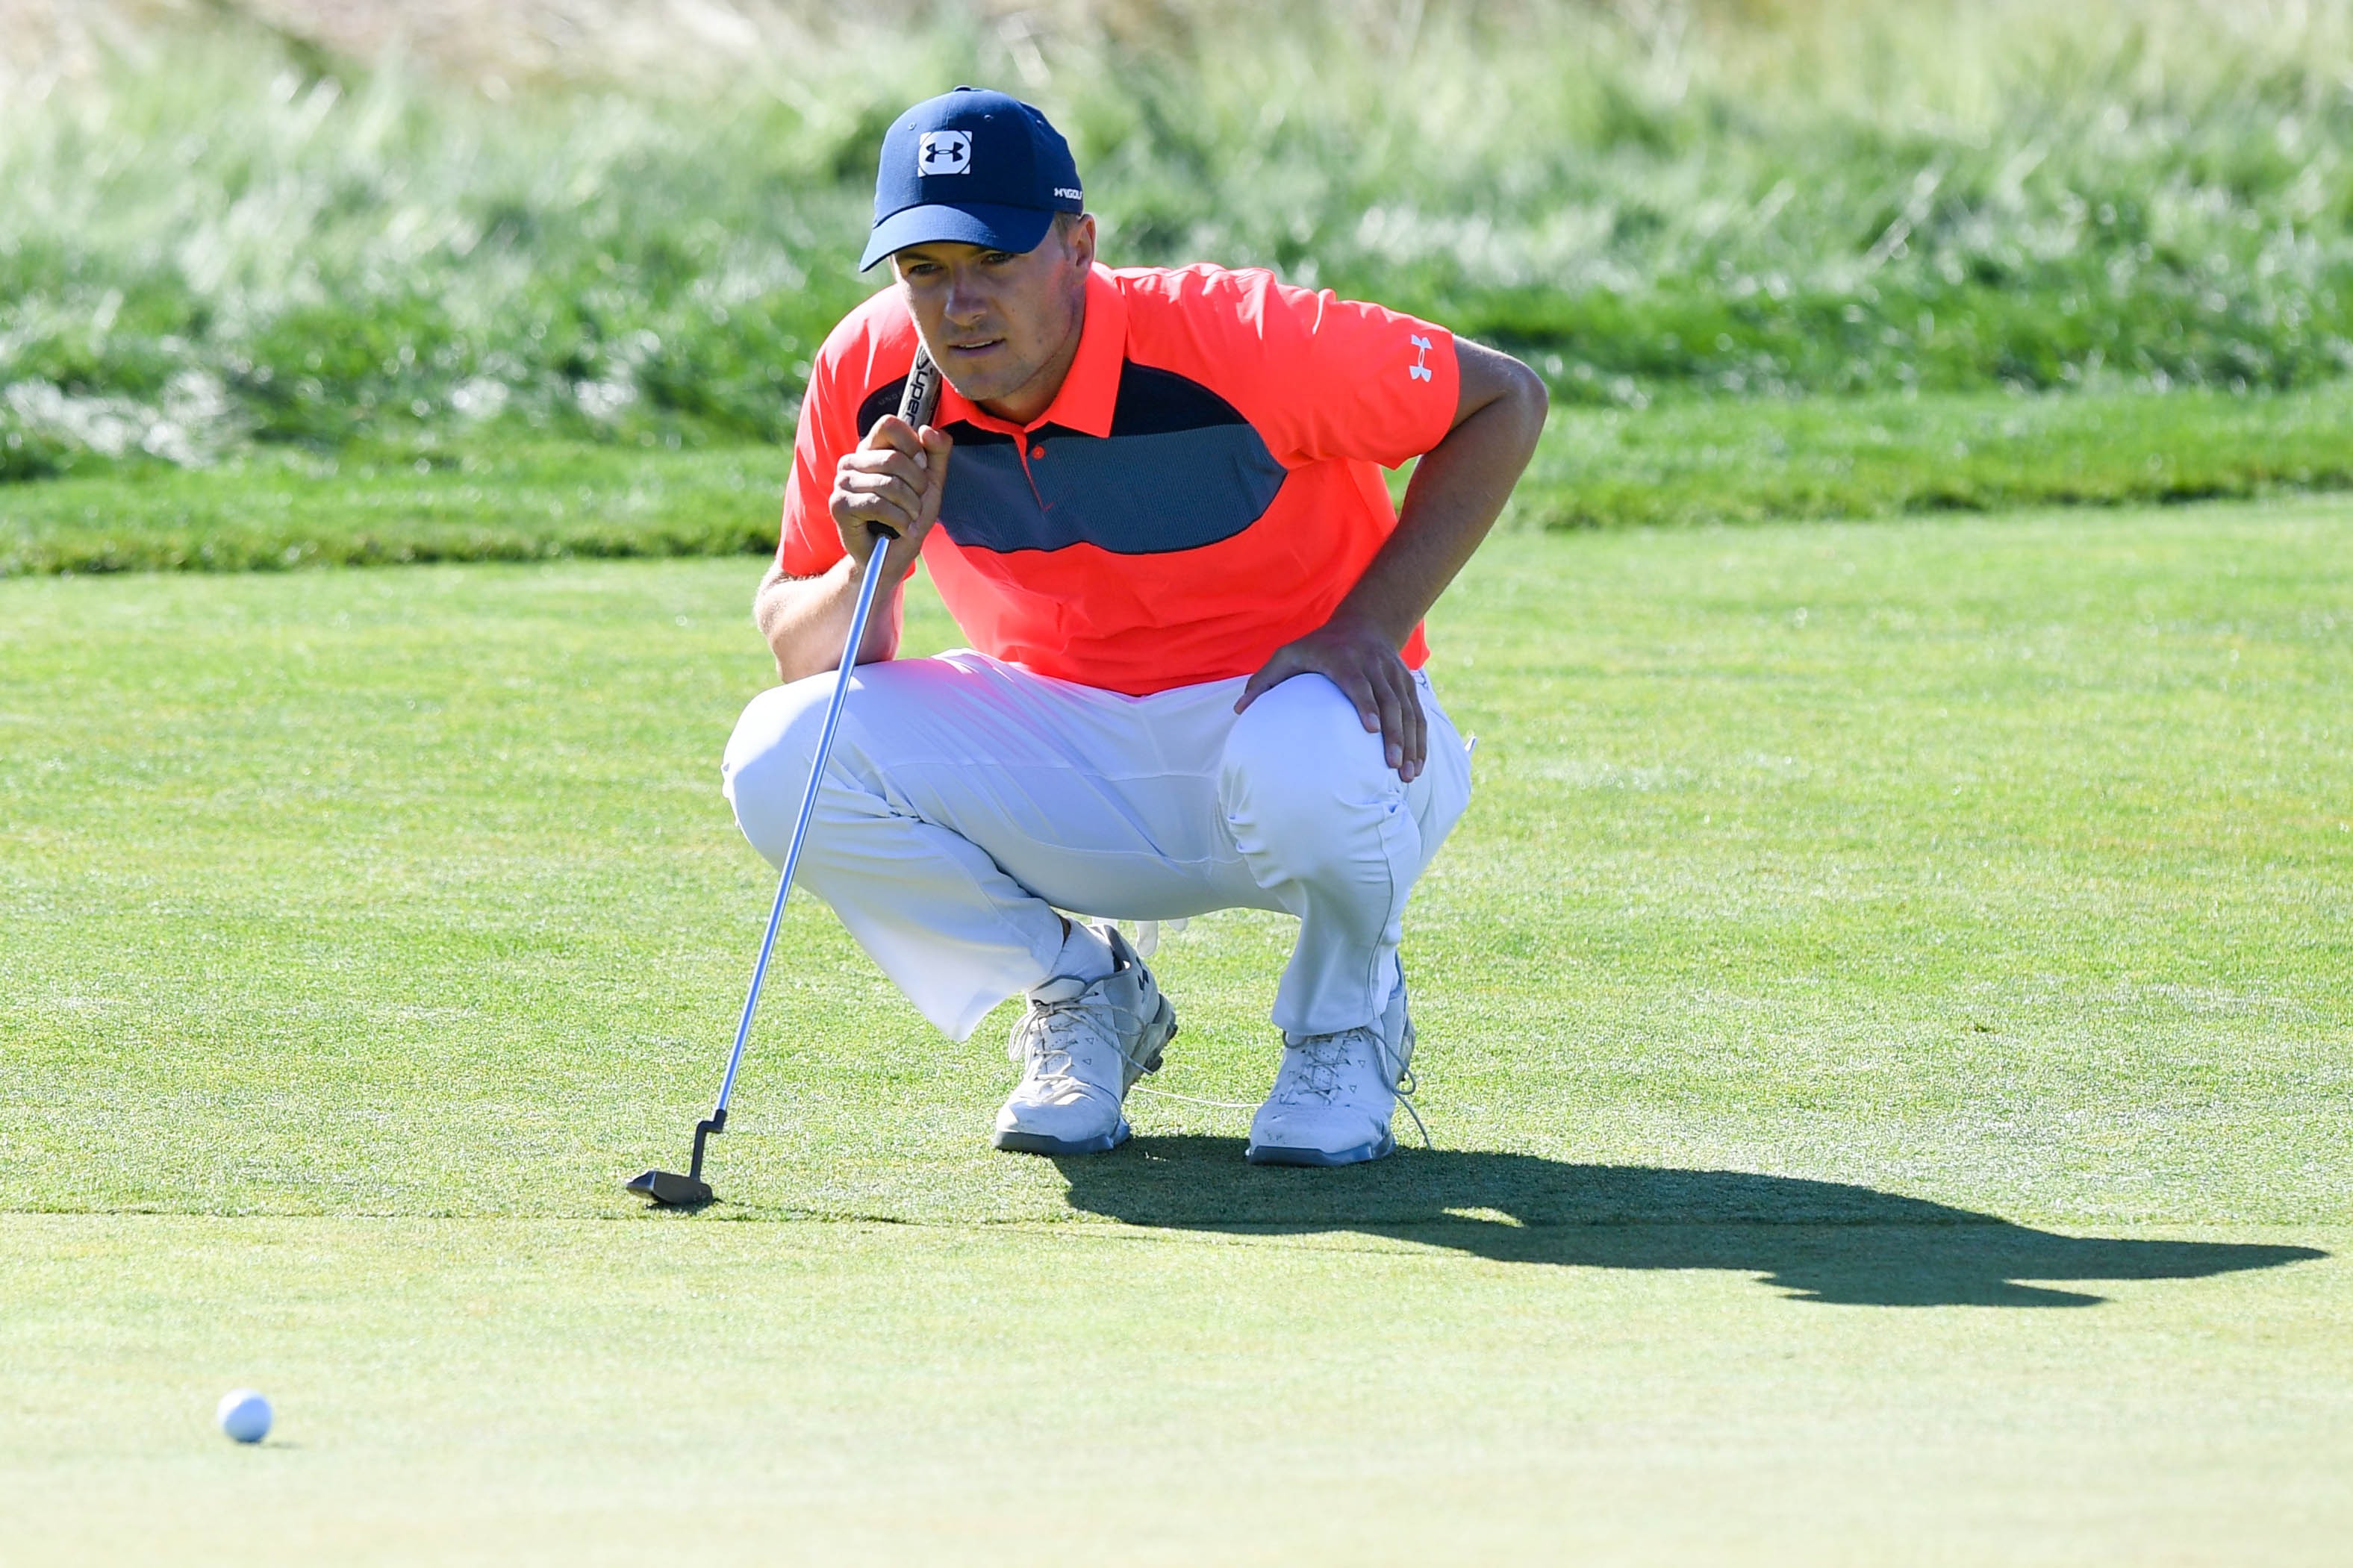 Jun 14, 2018; Southampton, NY, USA; Jordan Spieth lines up a putt on the twelfth green during the first round of the U.S. Open golf tournament at Shinnecock Hills GC - Shinnecock Hills Golf C. Mandatory Credit: Dennis Schneidler-USA TODAY Sports